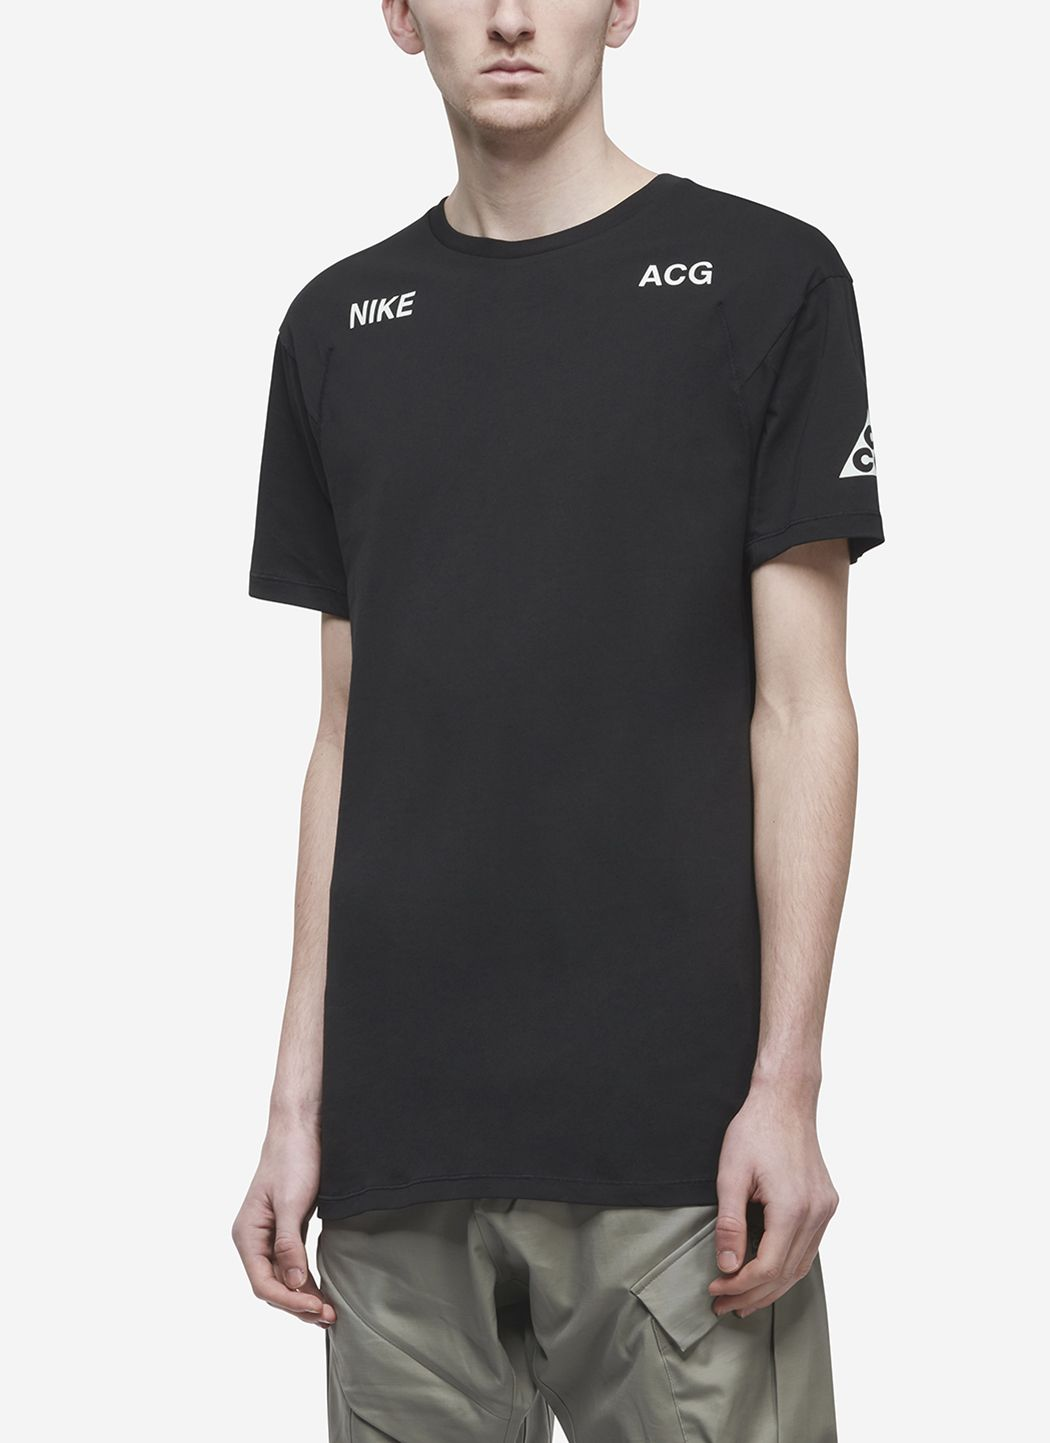 Nikelab ACG T-Shirt in Black / Barely Green 02